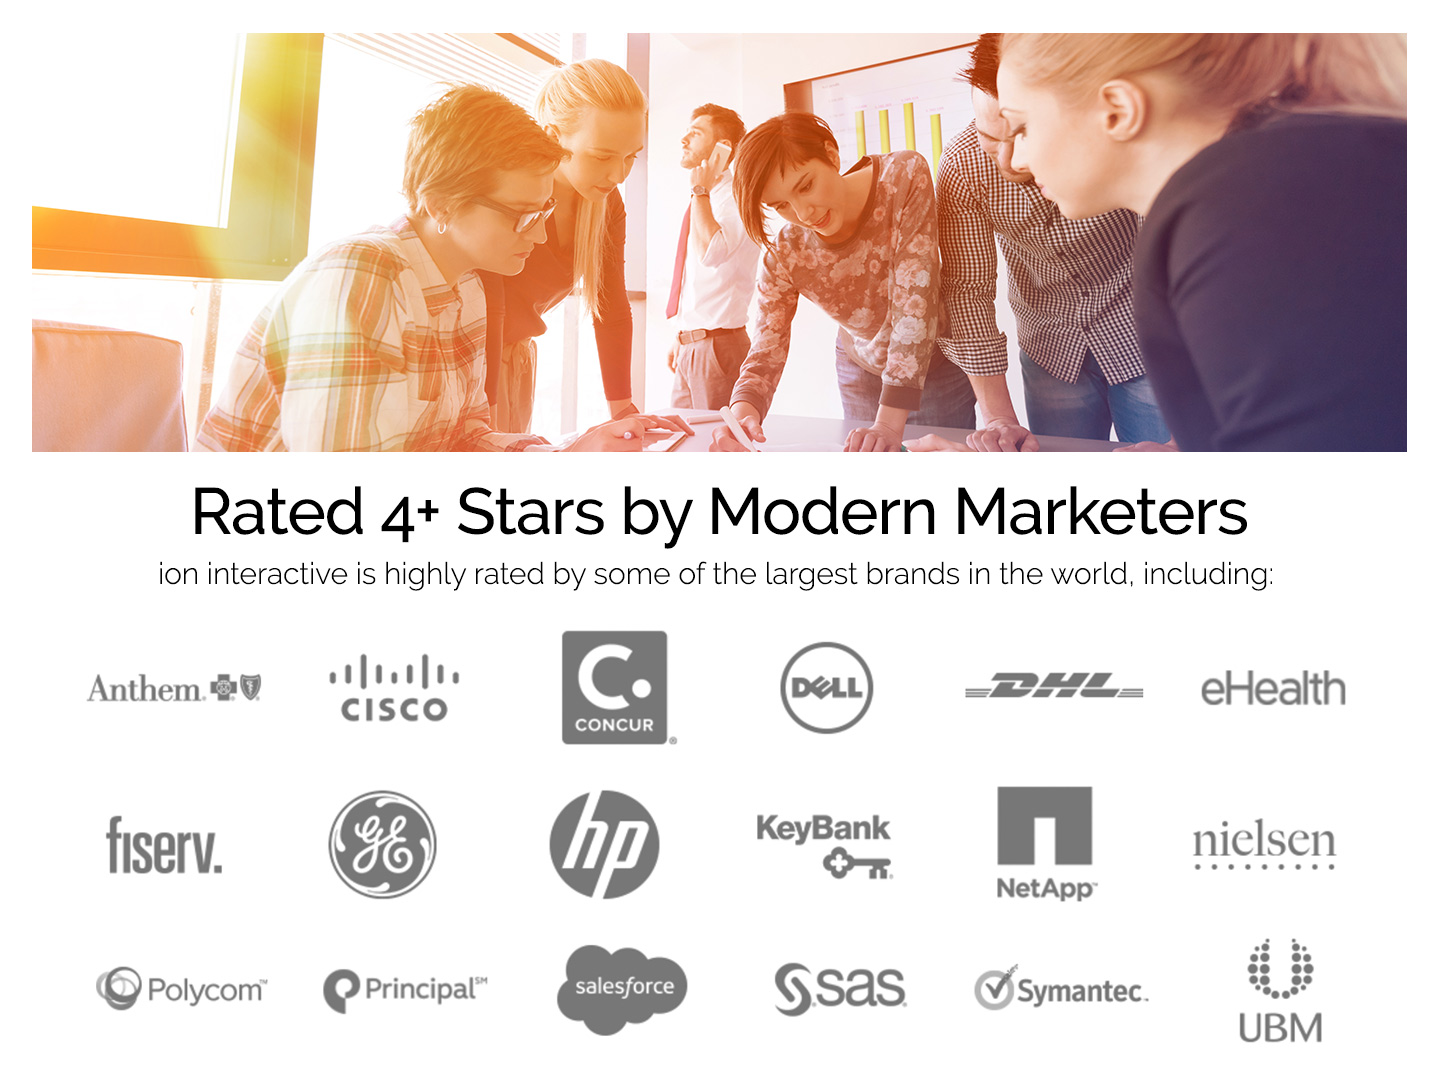 ion interactive Demo - Rated 4+ Stars by Modern Marketers